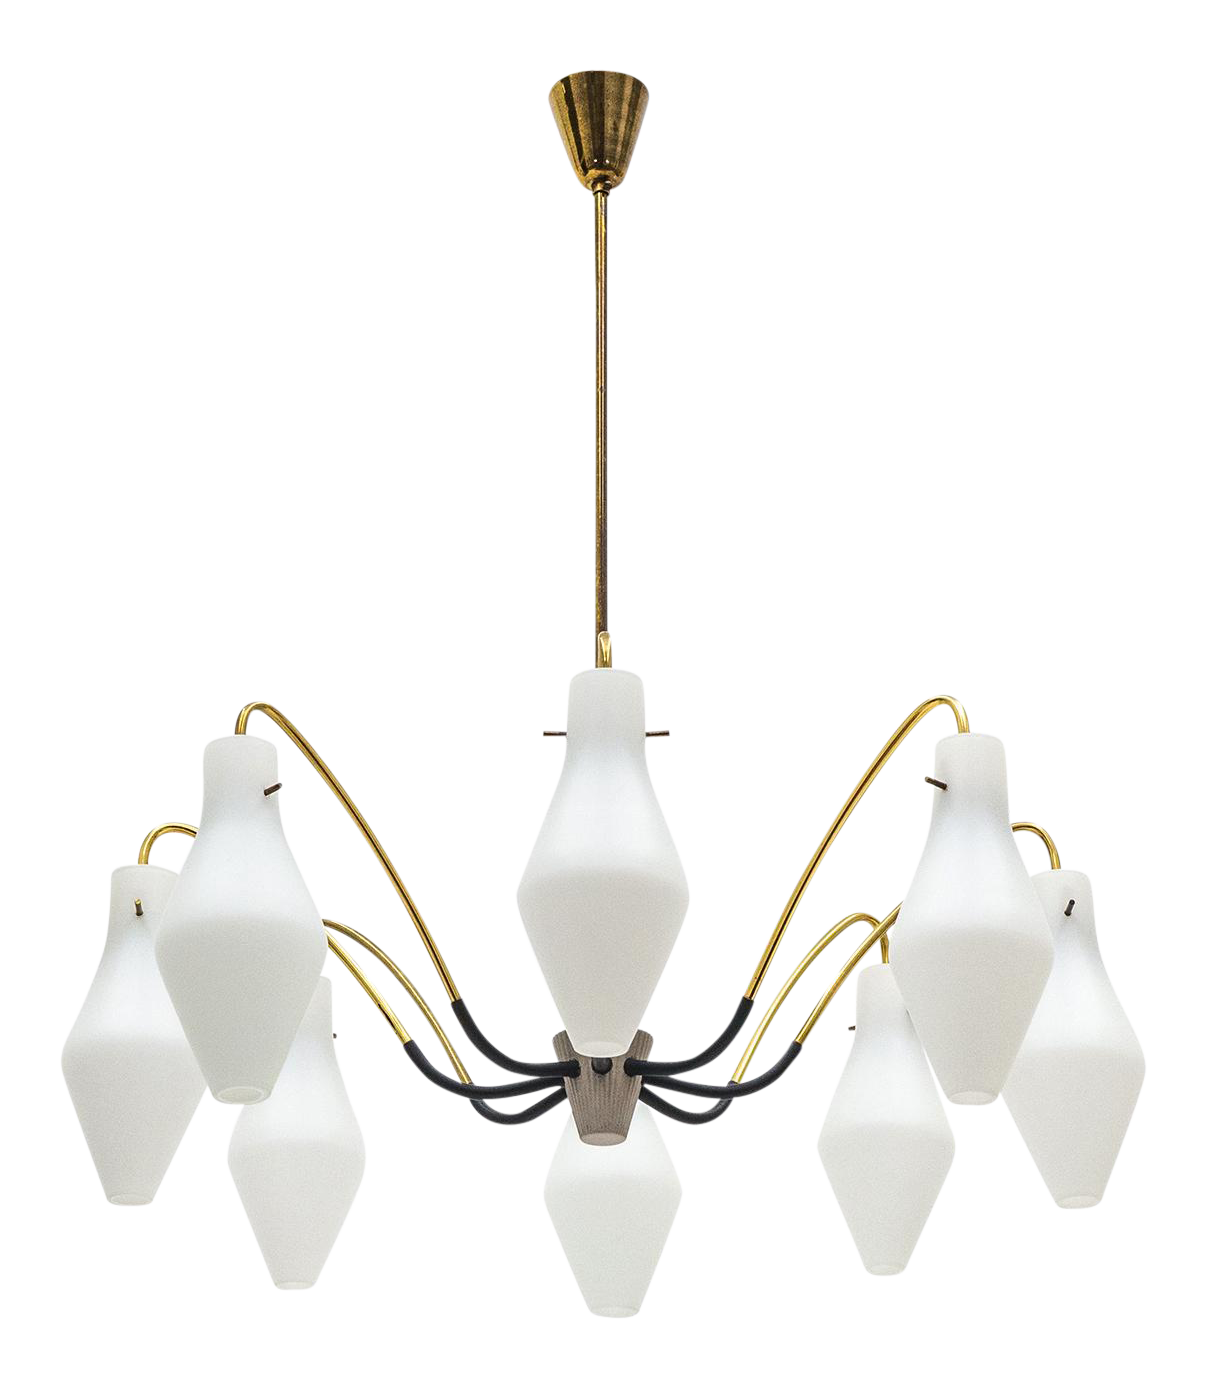 lamp buy alibaba pendant chandelier on detail spider com hat product edison